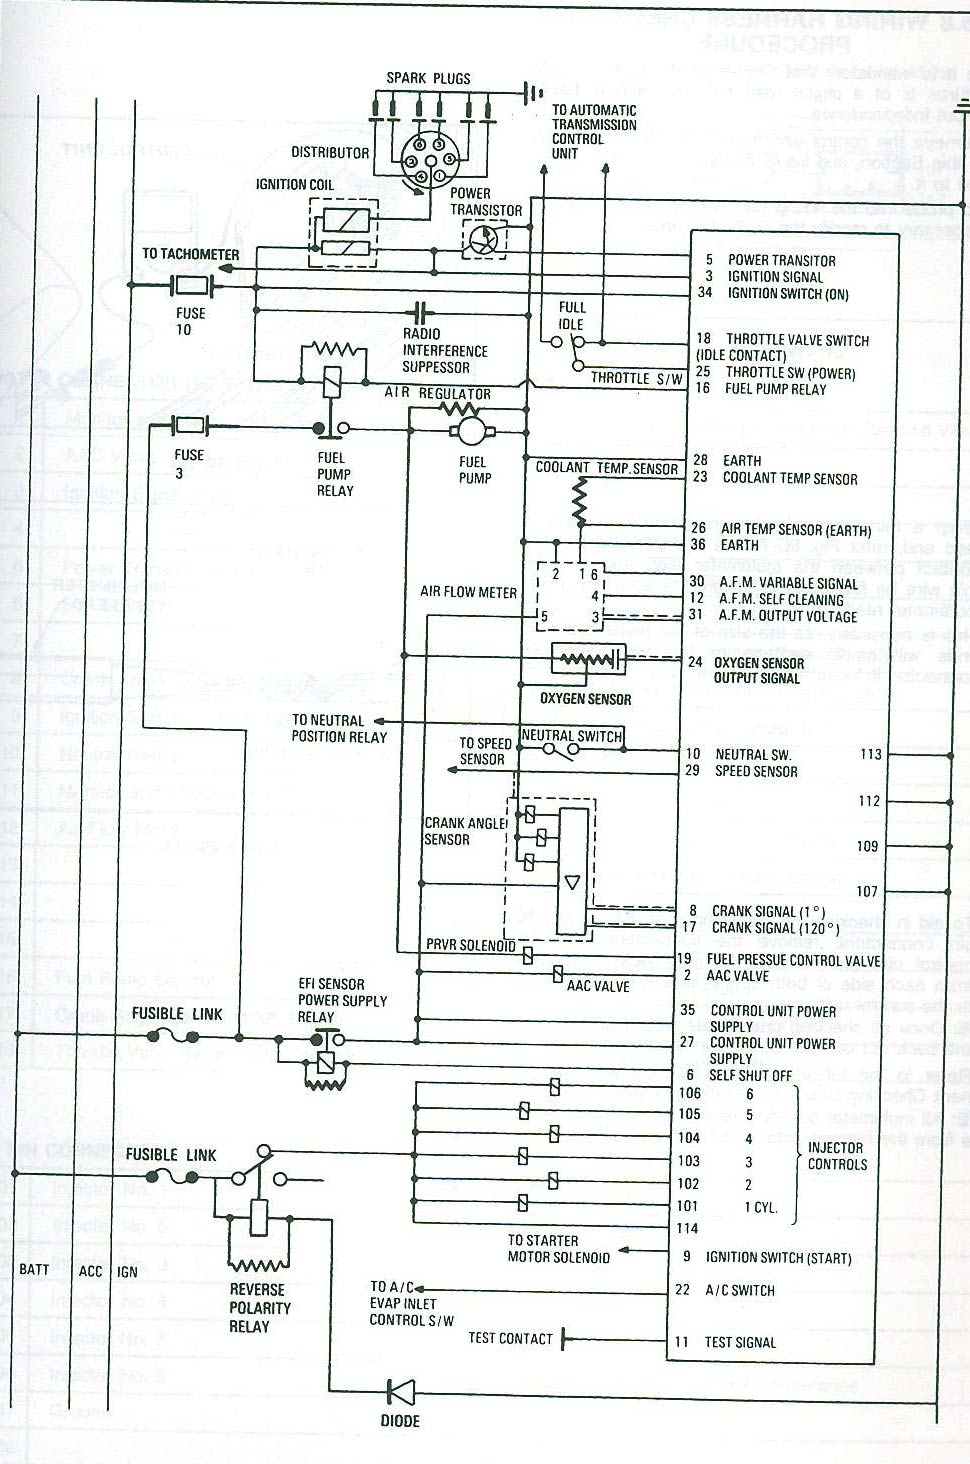 Vl Starter Motor Wiring Diagram : Vl harness into gq rb efi patrol nissan forum